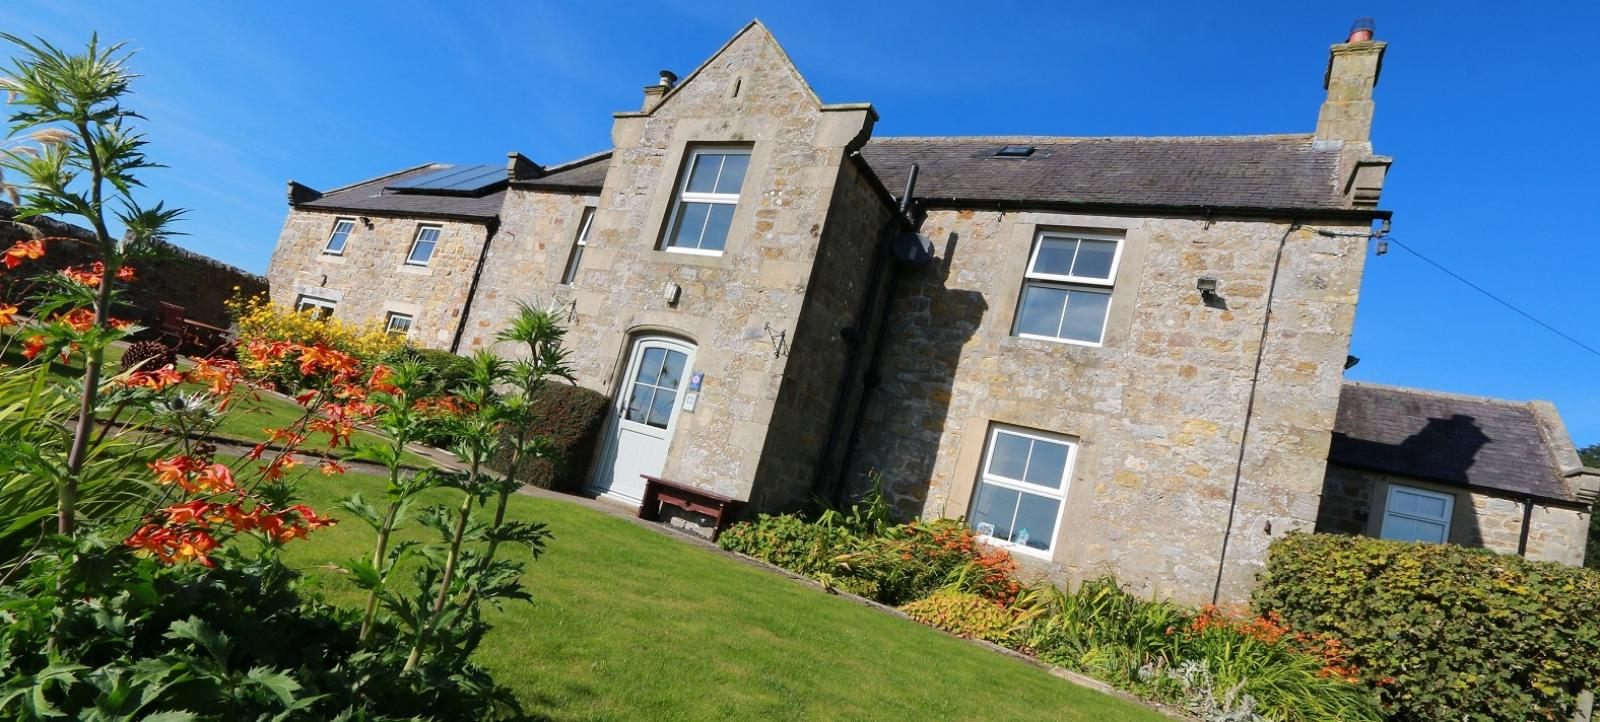 The Farmhouse at Carraw Bed and Breakfast